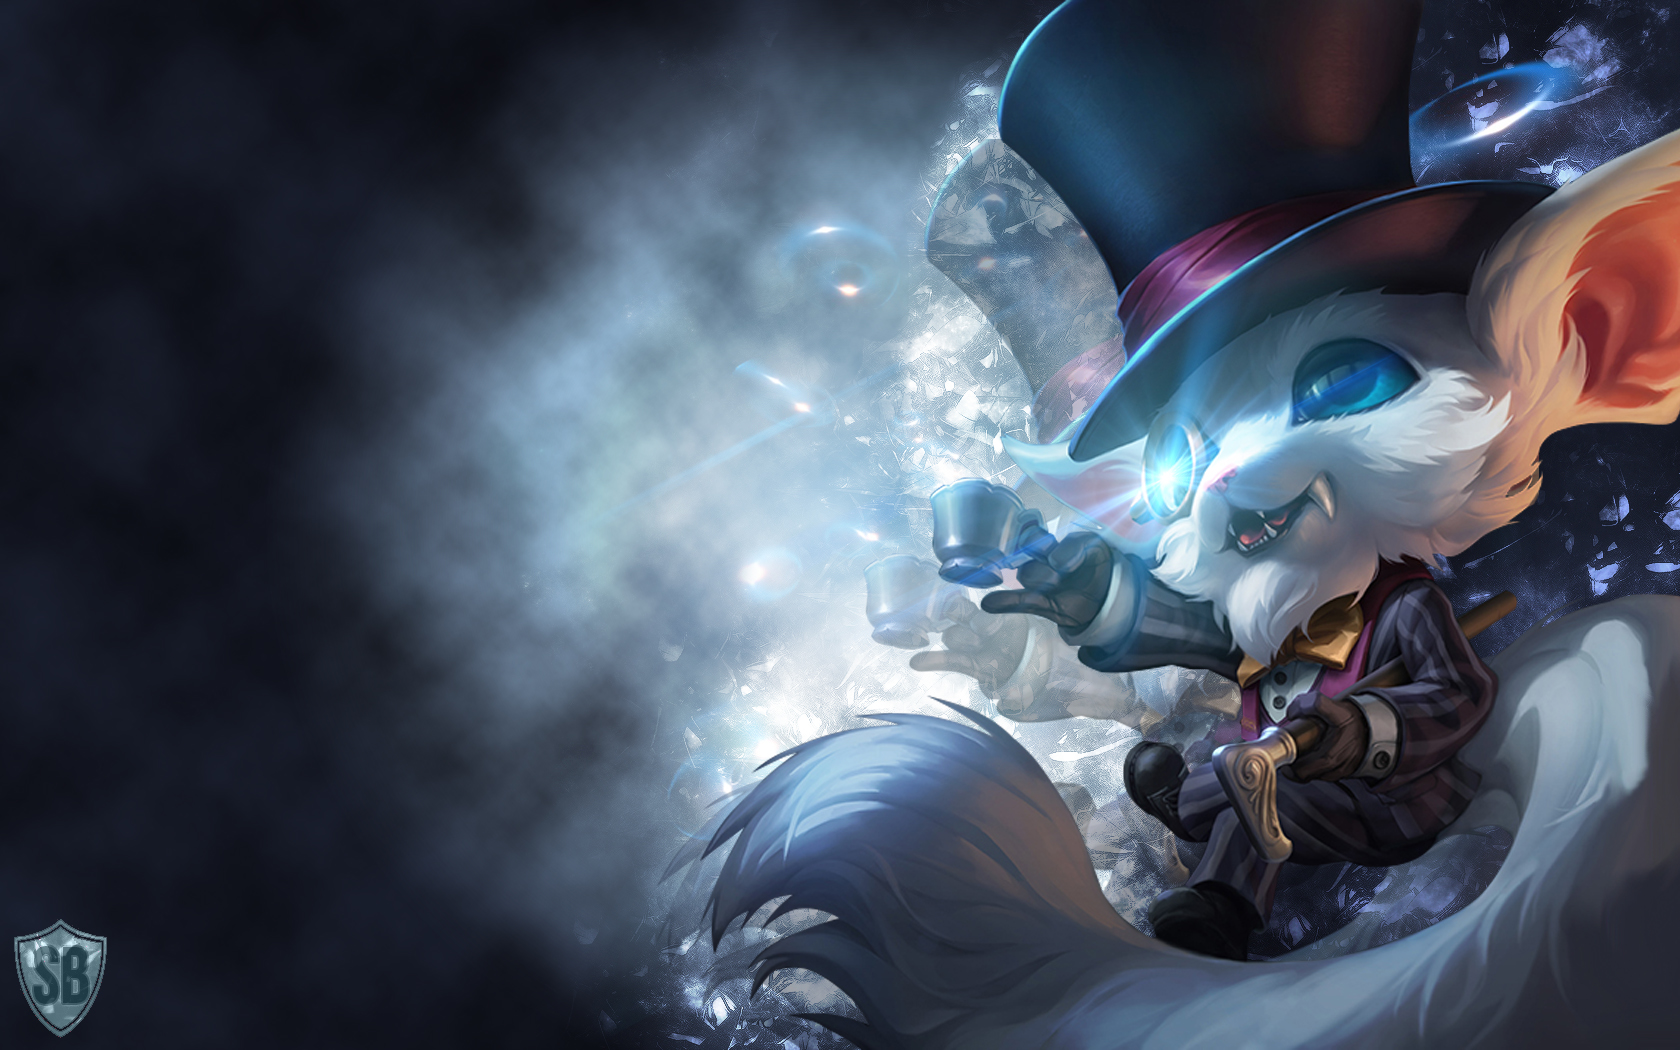 gentleman_gnar_wallpaper___league_of_legends_by_sammylad298-d91jgm3